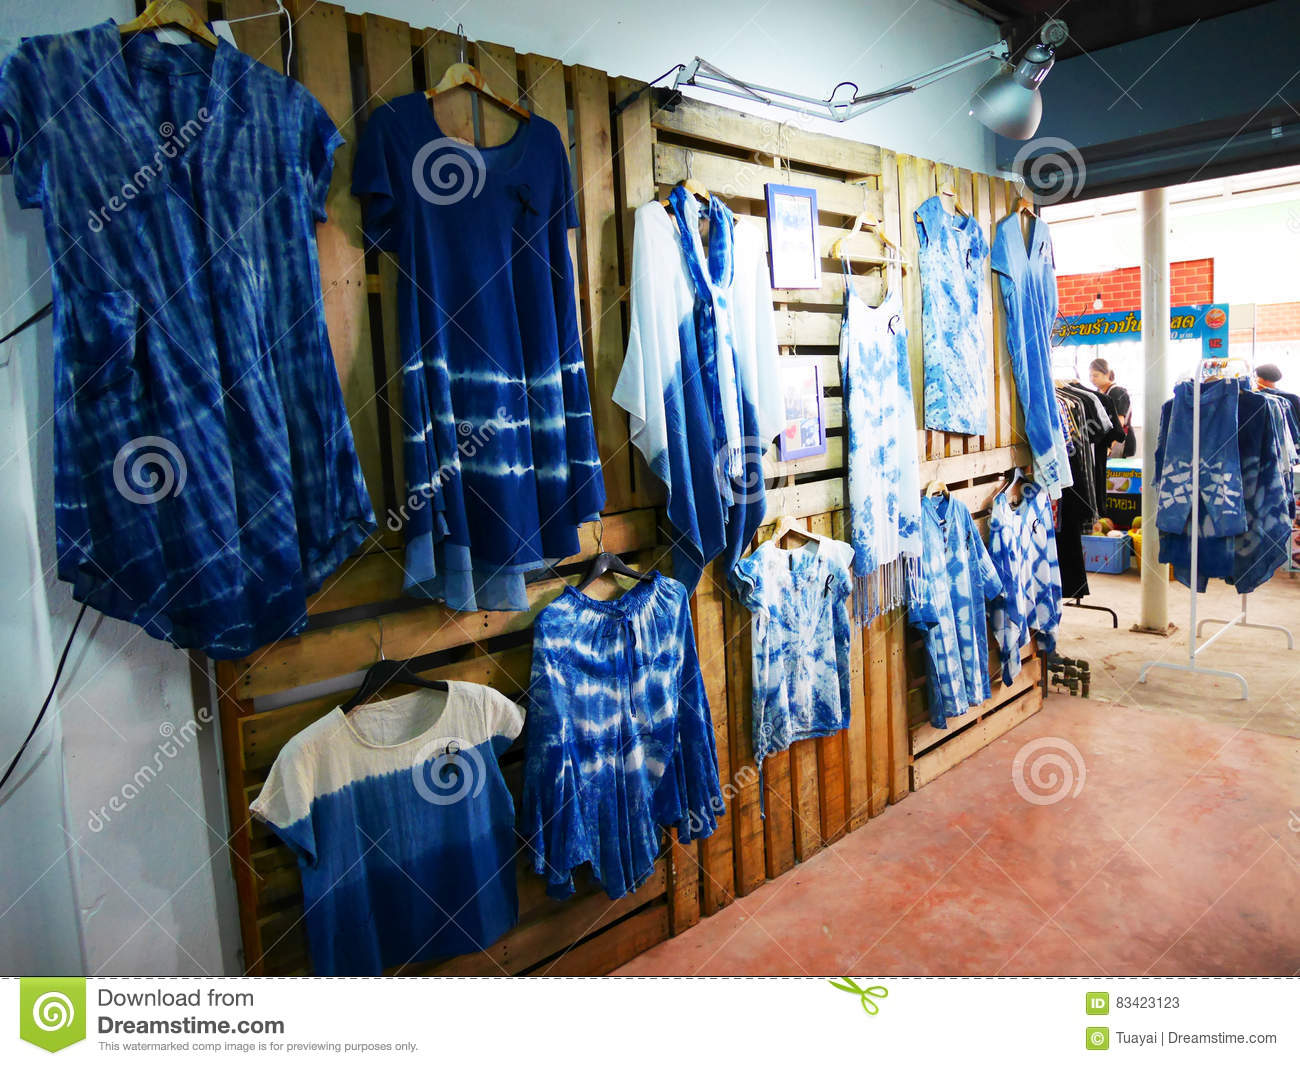 My Clothing Shop Fashion House Tie Batik Dyeing Clothes Mauhom I Editorial Stock Photo Image